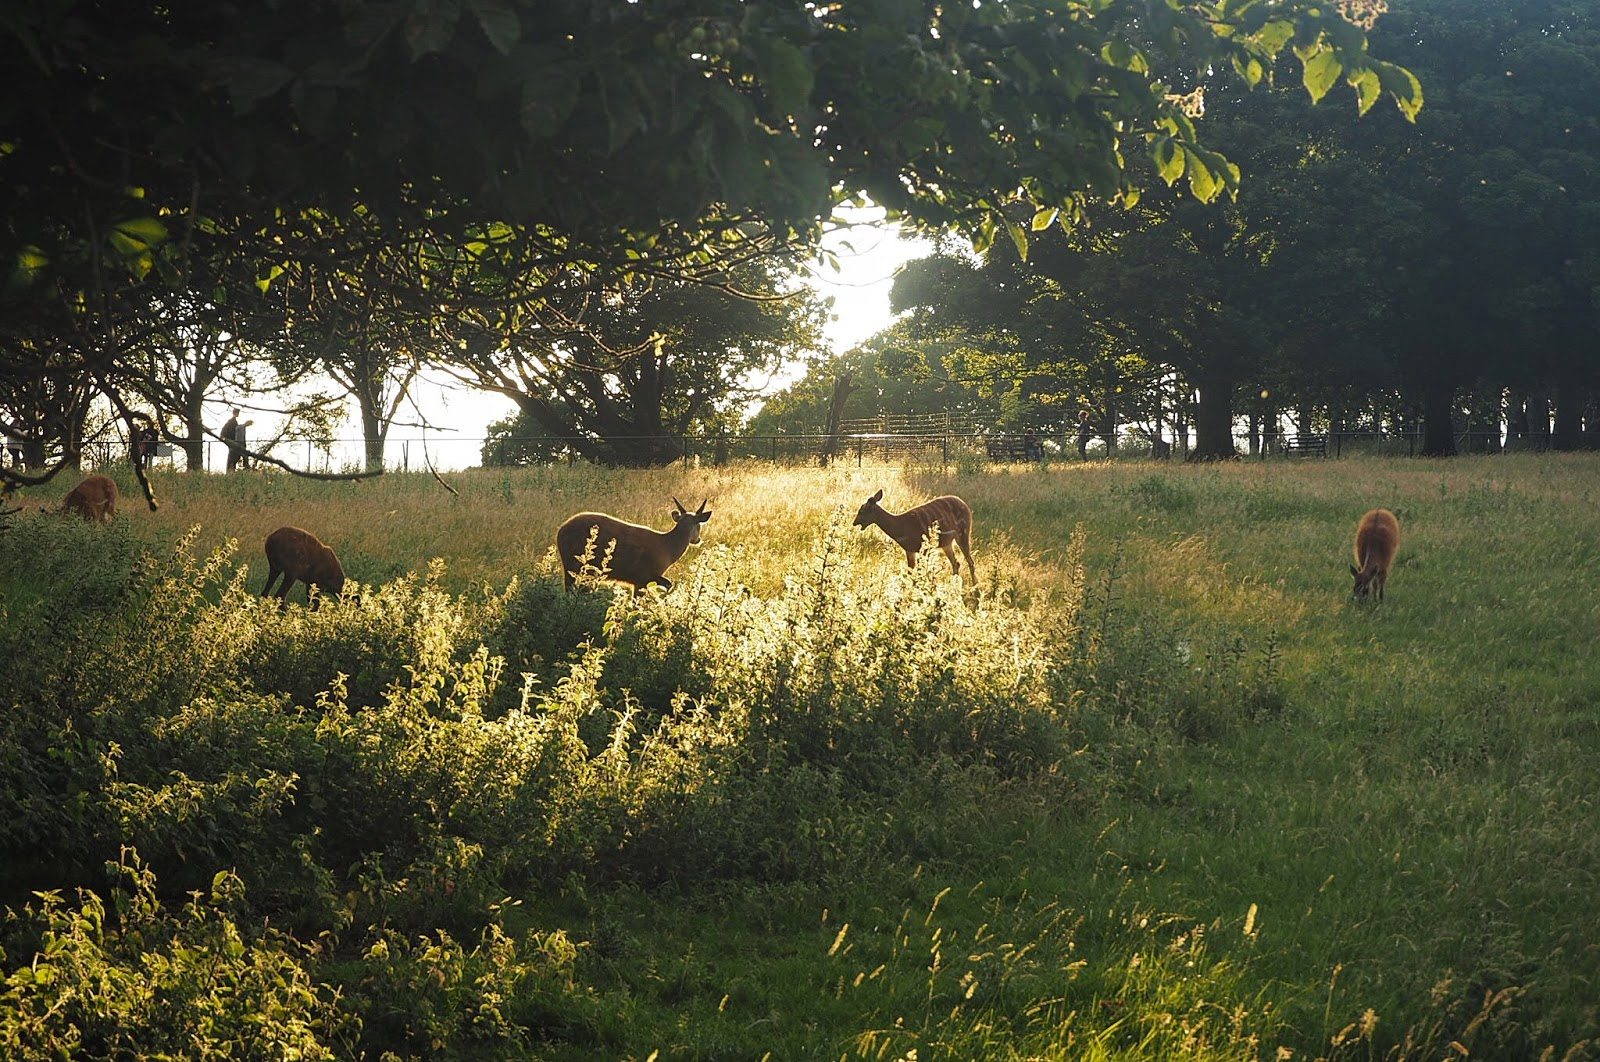 Deer at dusk ZSL Whipsnade Zoo